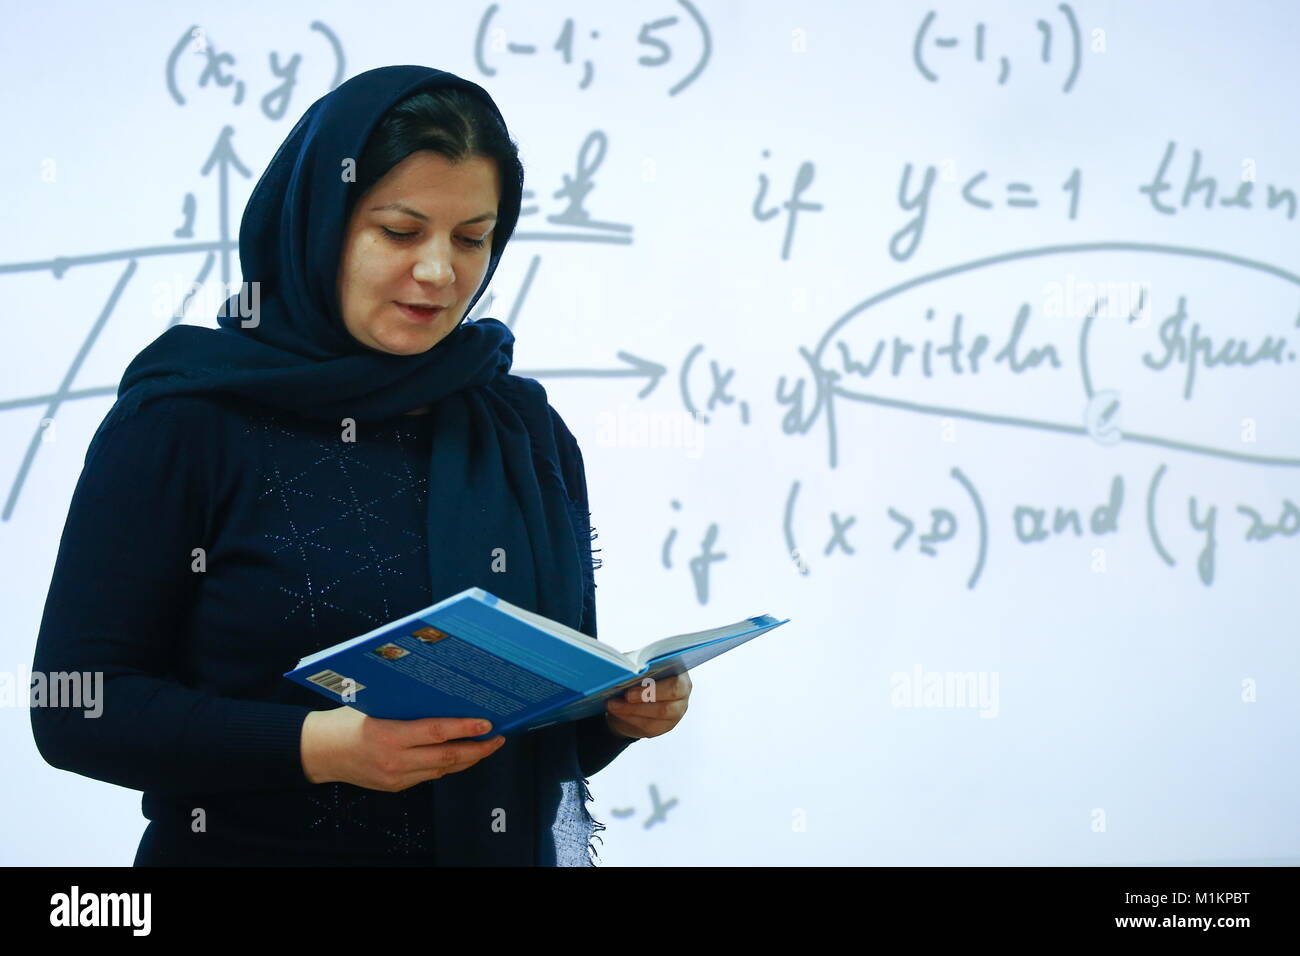 MAKHACHKALA, RUSSIA - JANUARY 30, 2018: A teacher in a headscarf during a maths lesson at the Centre for Gifted - Stock Image